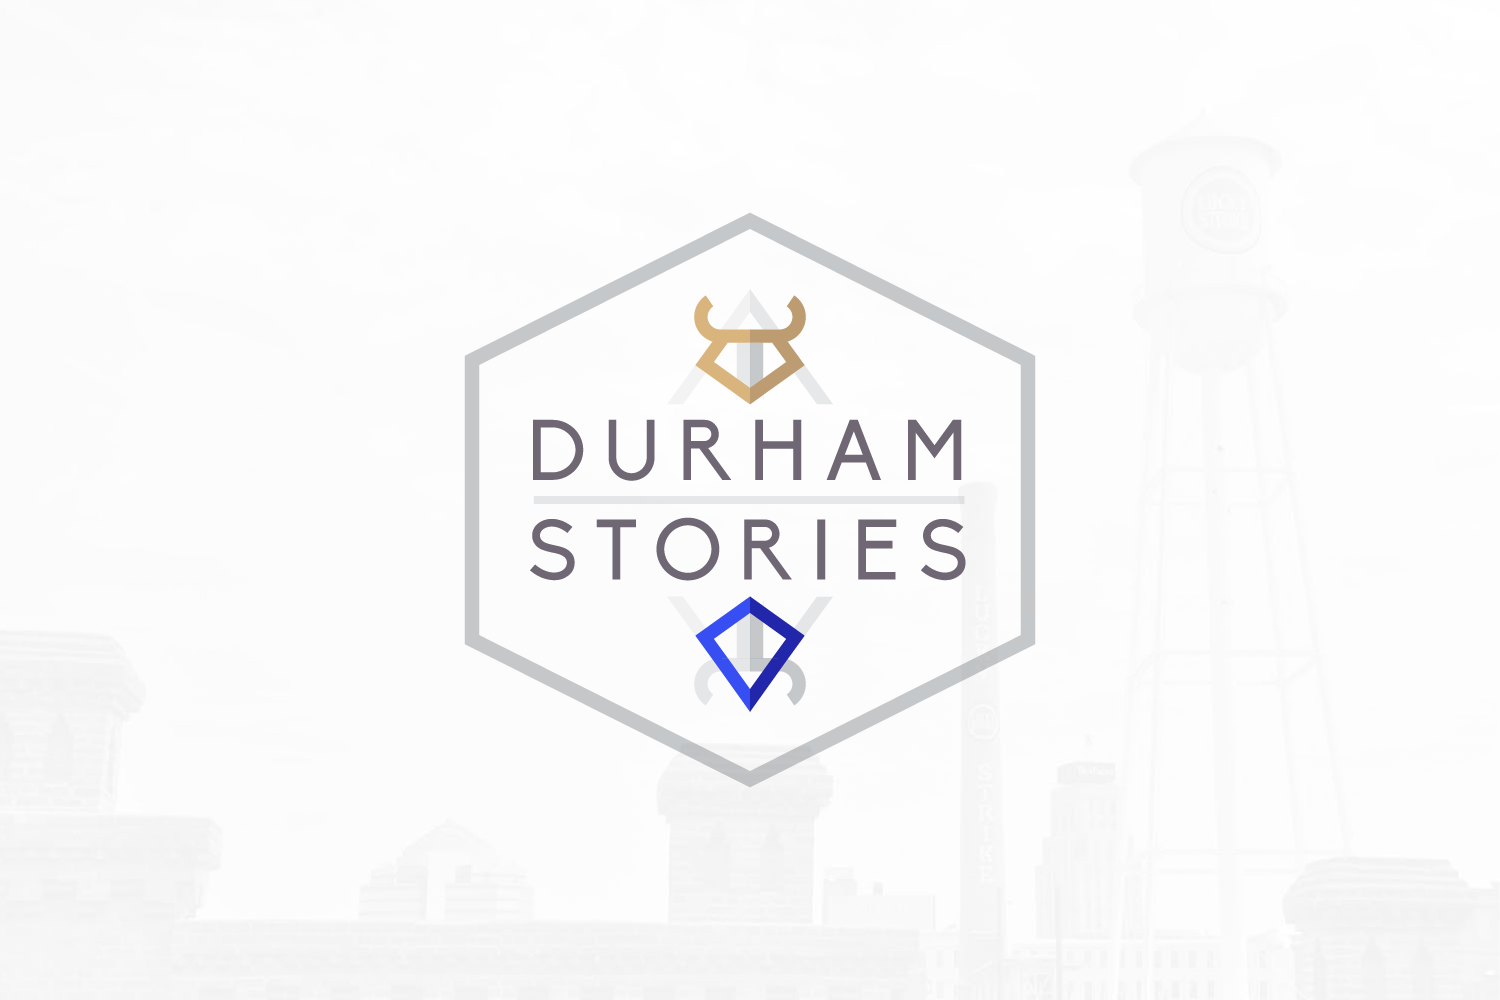 01_Logo_DurhamStories.png